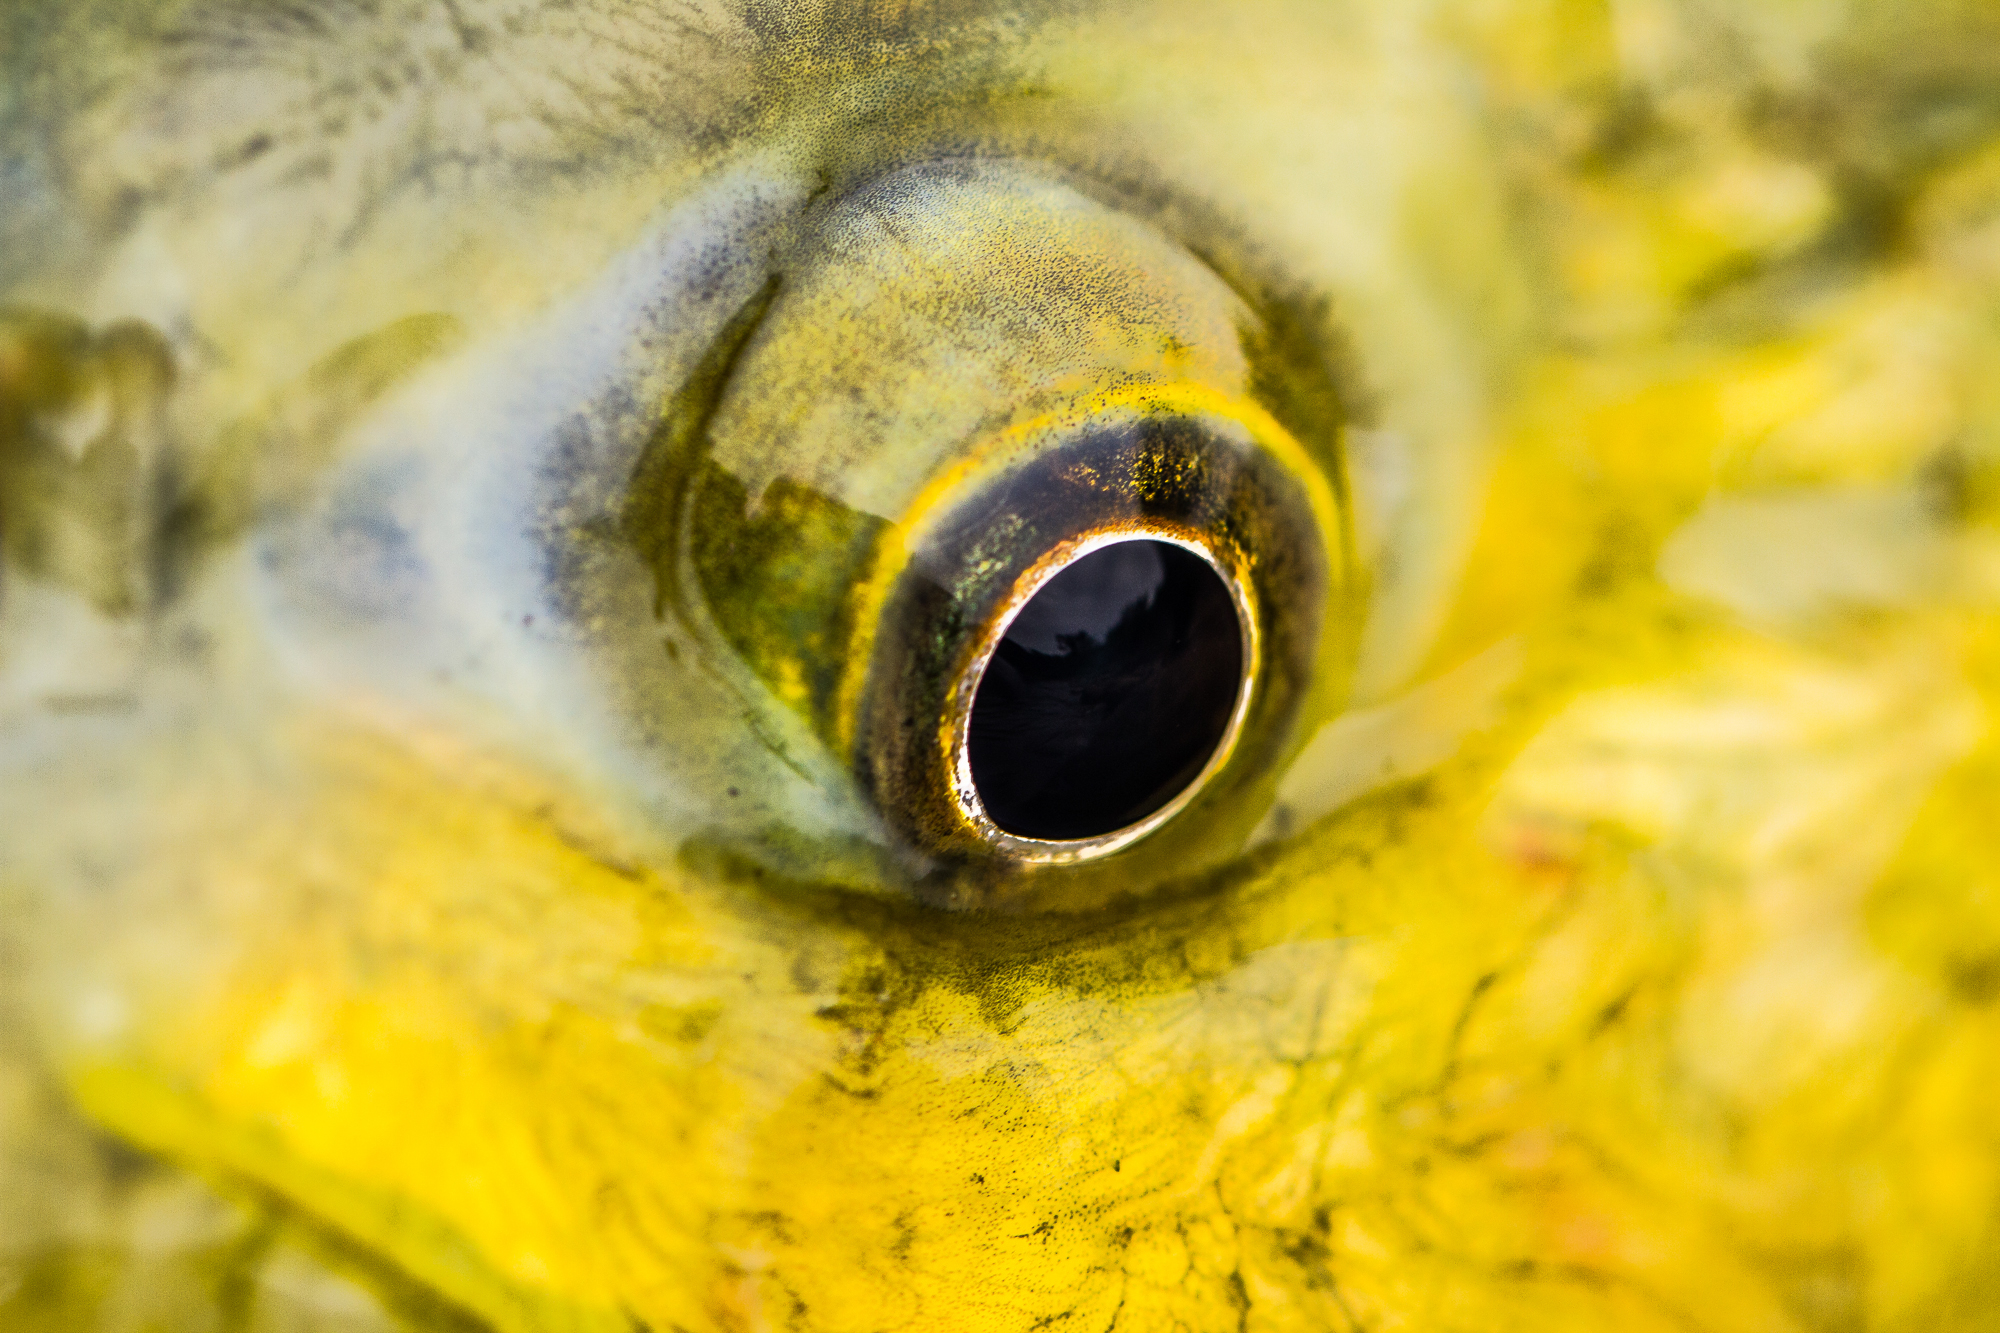 Macro shot of golden dorado eye.